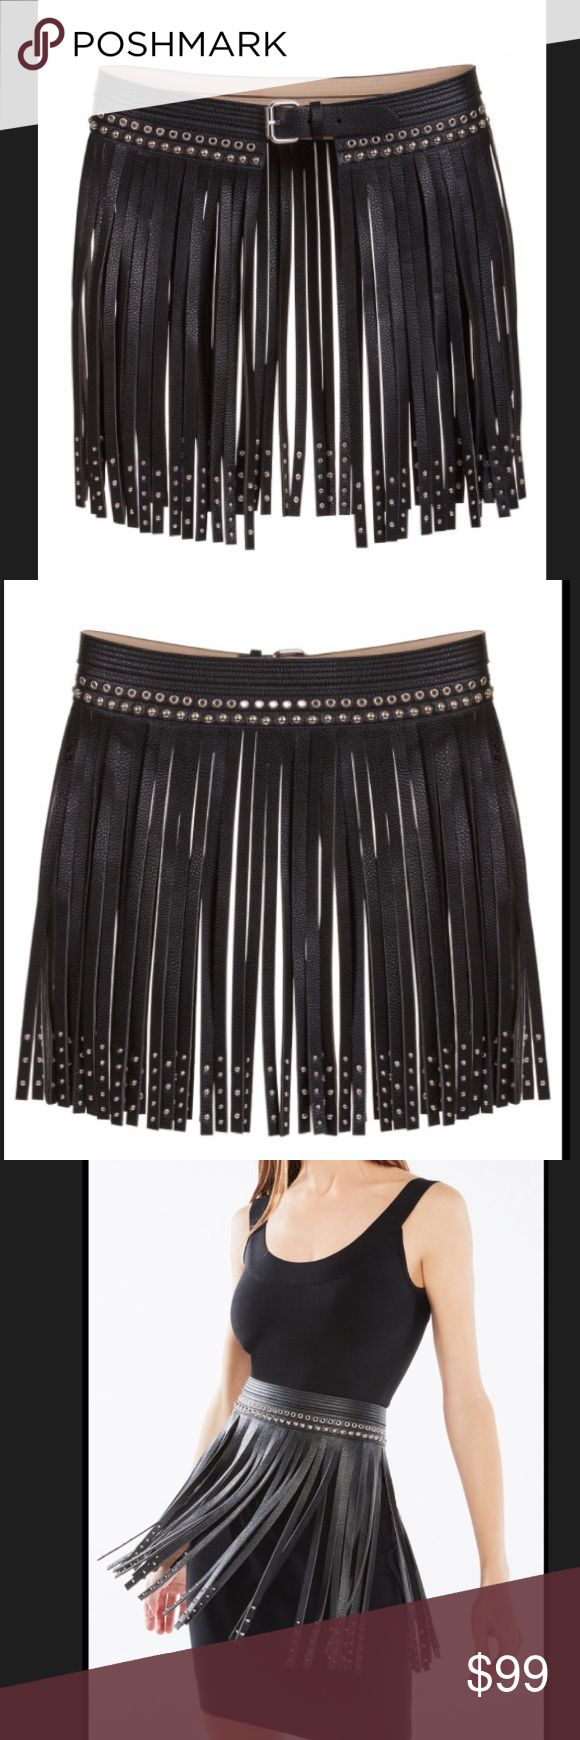 """Bcbg Maxazria Fringe Studded Faux leather belt S New with tags! SUPER CHIC Faux-leather waist belt is finished with cascading fringe and edgy stud embellishments.  Adjustable buckle closure.  Material: Pebbled faux leather - polyurethane.  Imported.  S=29"""" Standard sizing.  Retail $138+ tax FINAL SALE!!! BCBGMaxAzria Accessories Belts"""